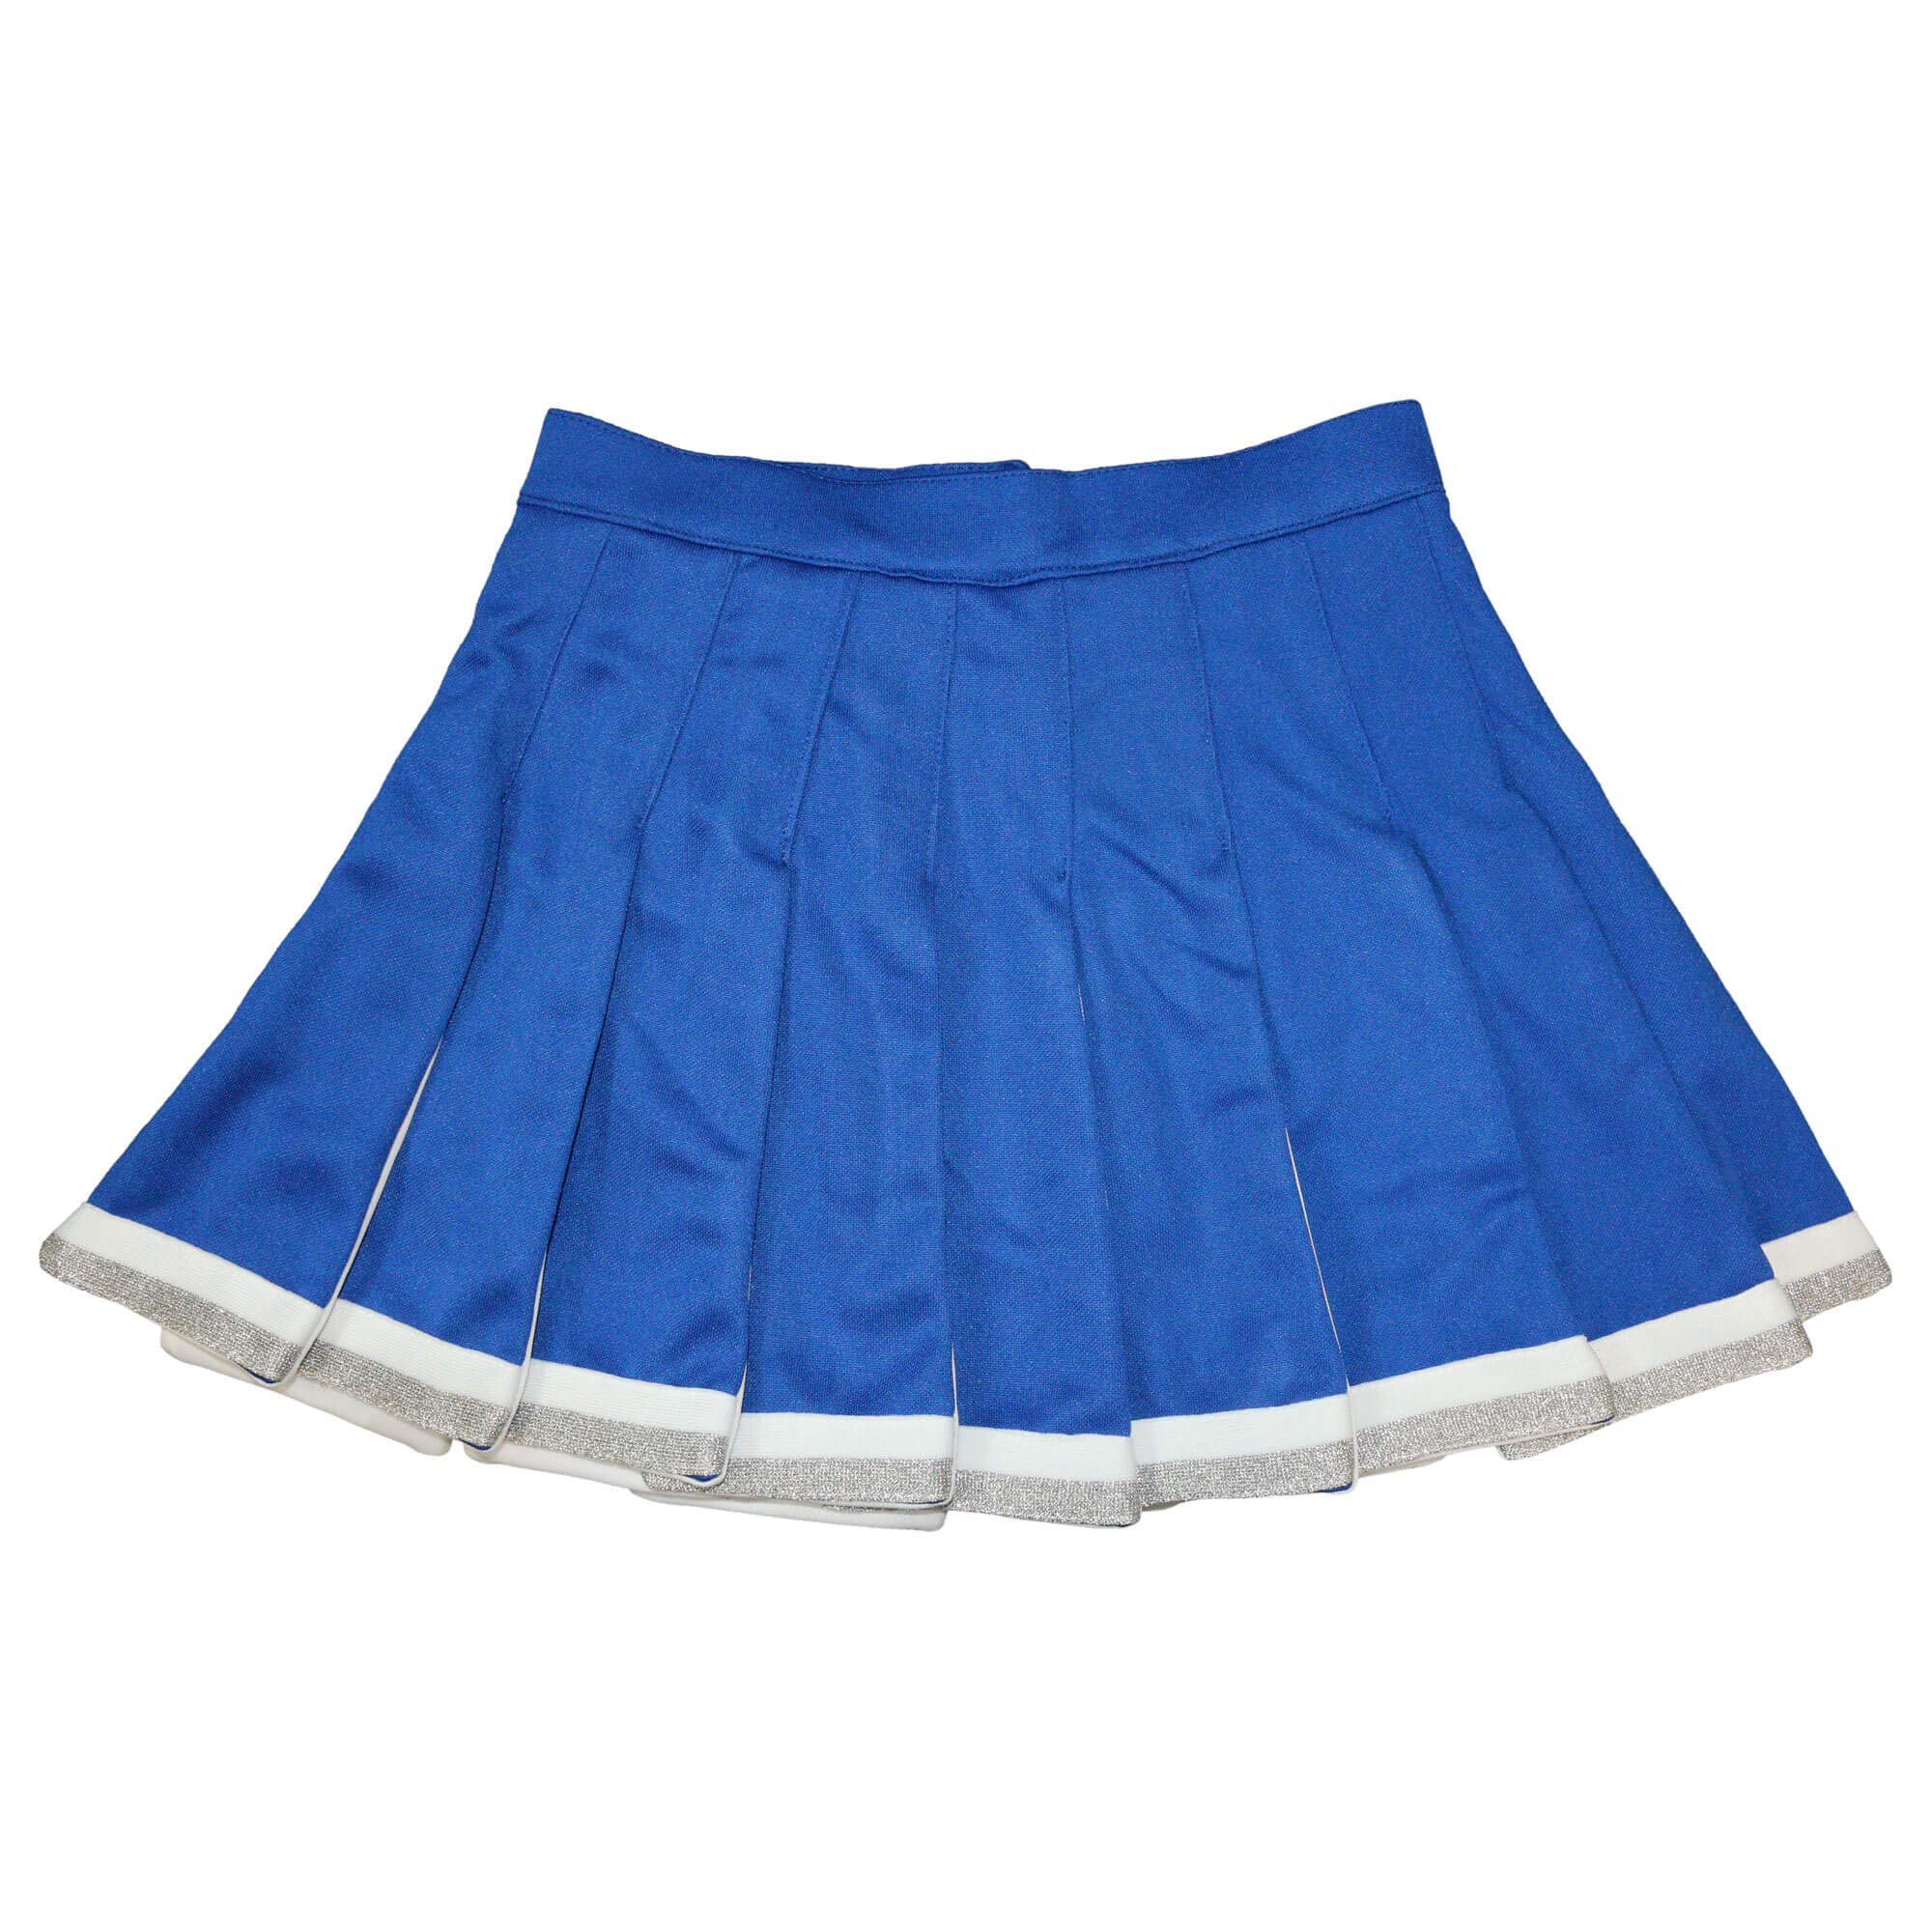 Danzcue Child Cheerleading Pleated Skirt, Royal-White, Large by Danzcue